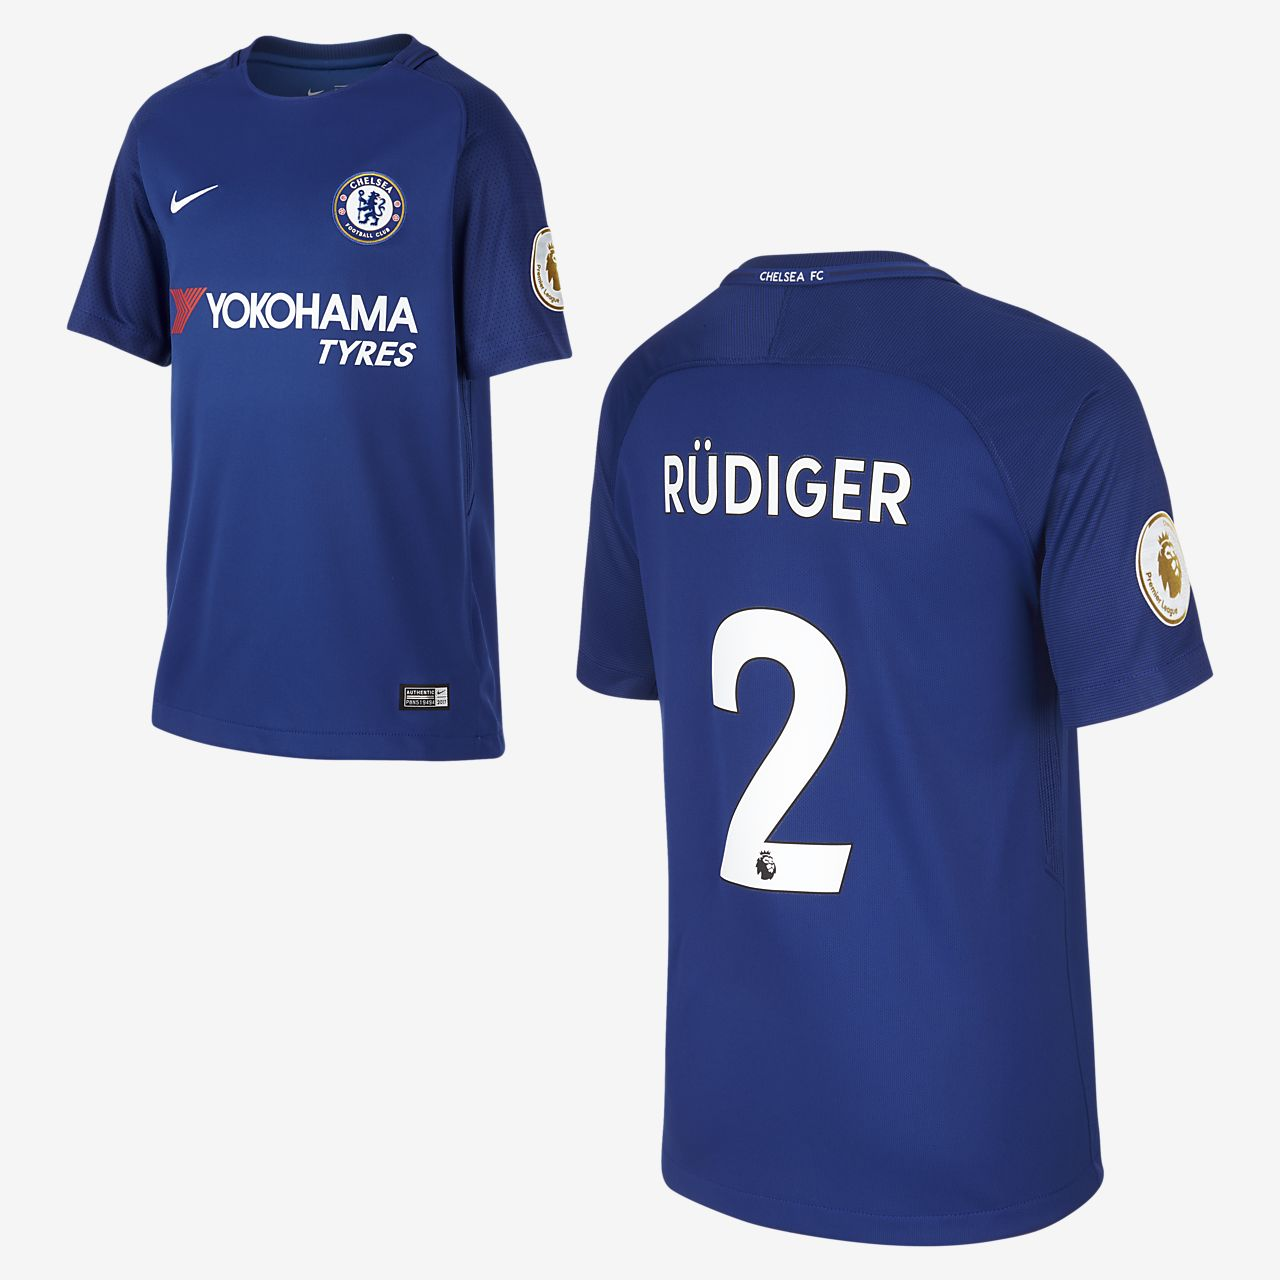 2017/18 Chelsea FC Stadium Home (Antonio Rudiger) fotballdrakt for store barn